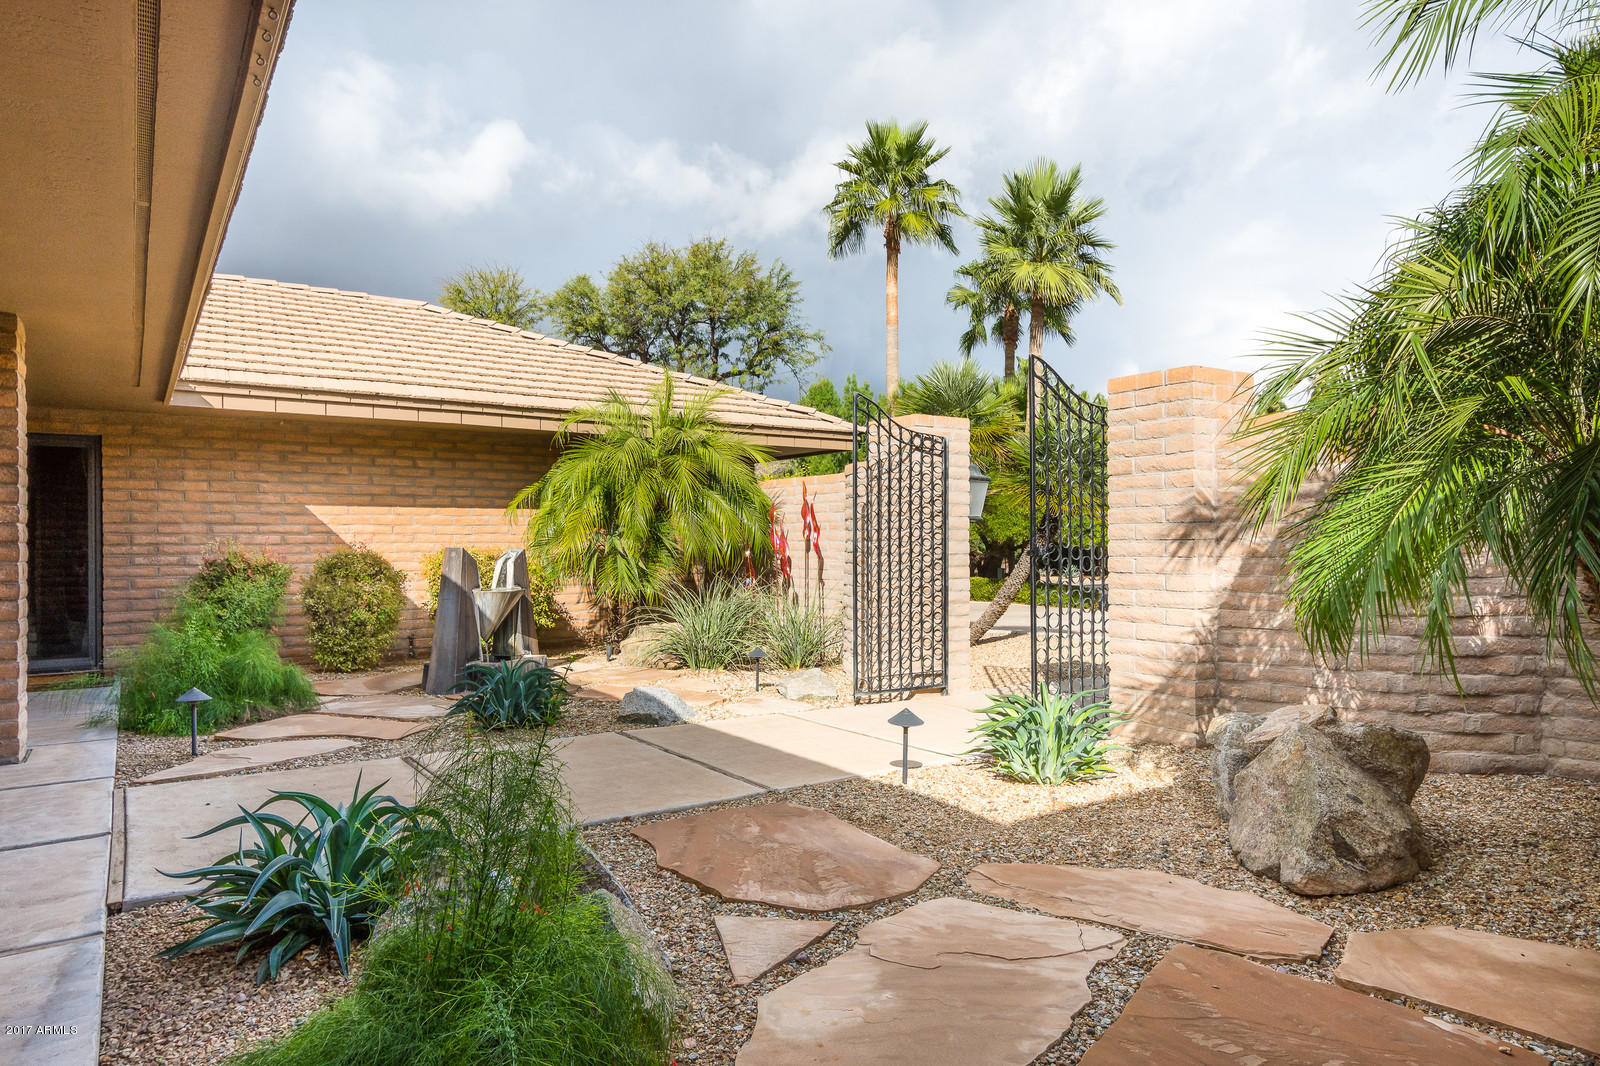 6224 YUCCA Road, Paradise Valley, Arizona 85253, 4 Bedrooms Bedrooms, ,5.5 BathroomsBathrooms,Residential,For Sale,YUCCA,5999412